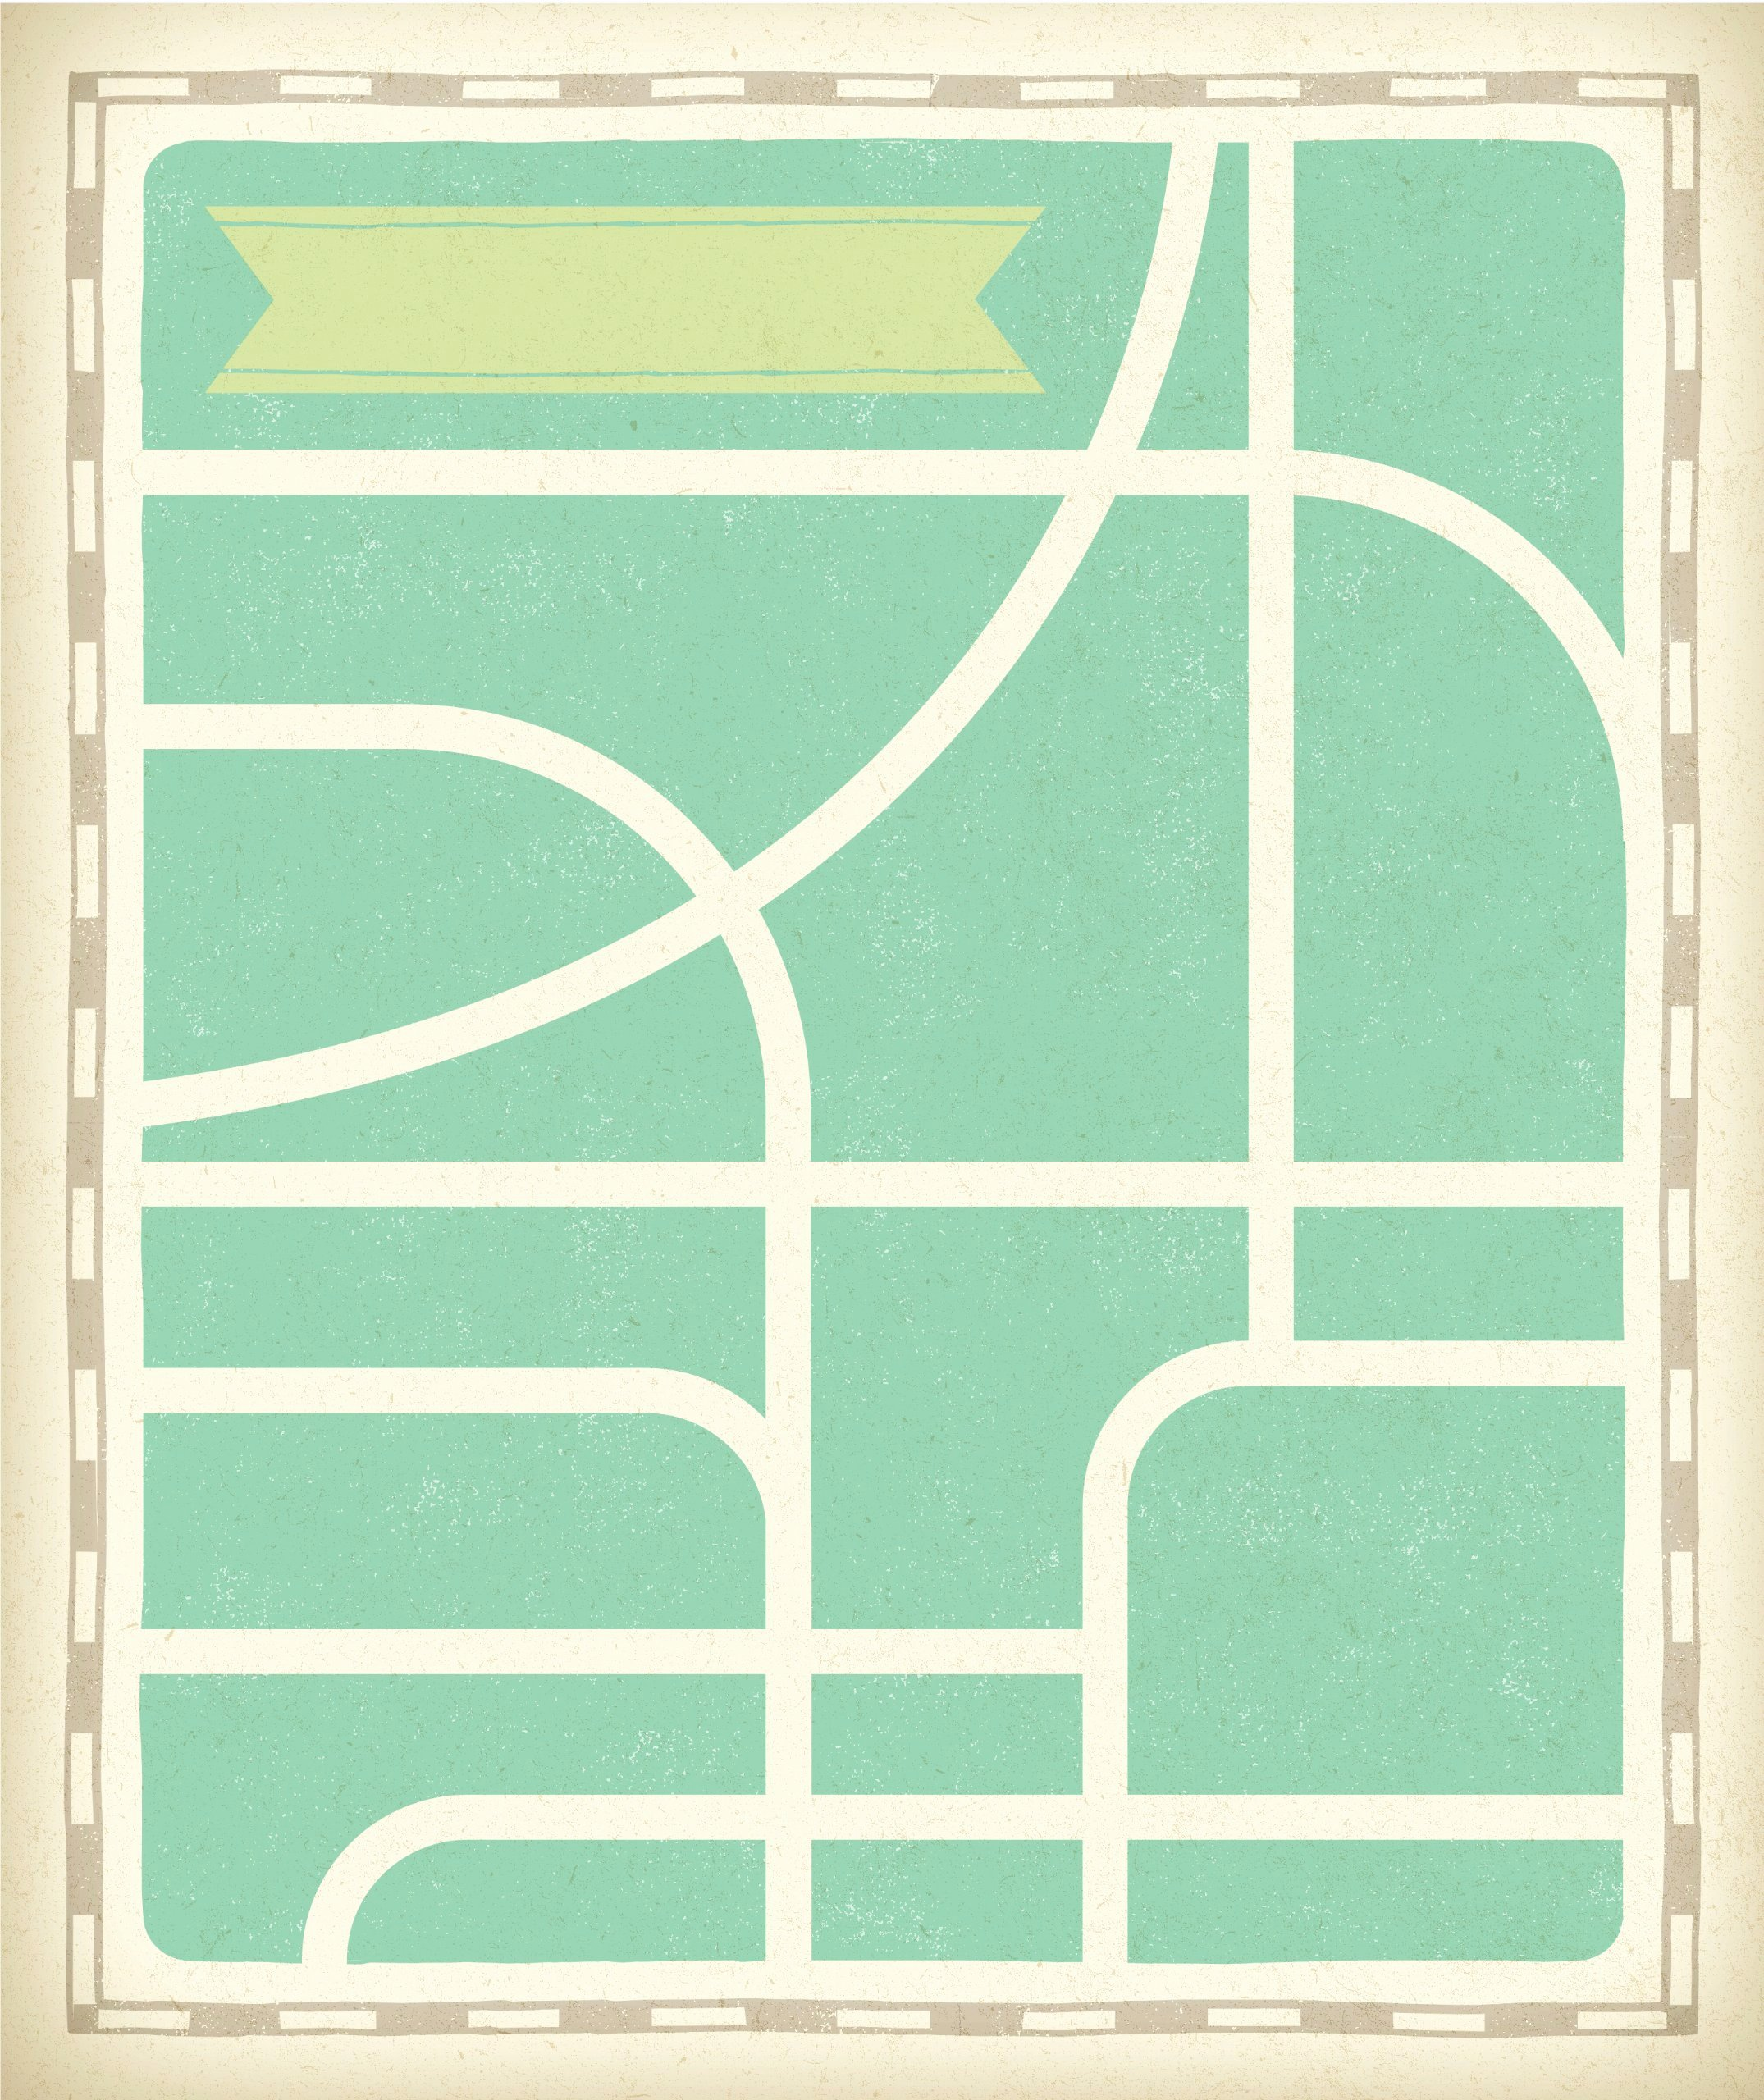 Blank City Map Template Lovely Blank City Map Template Design Templates